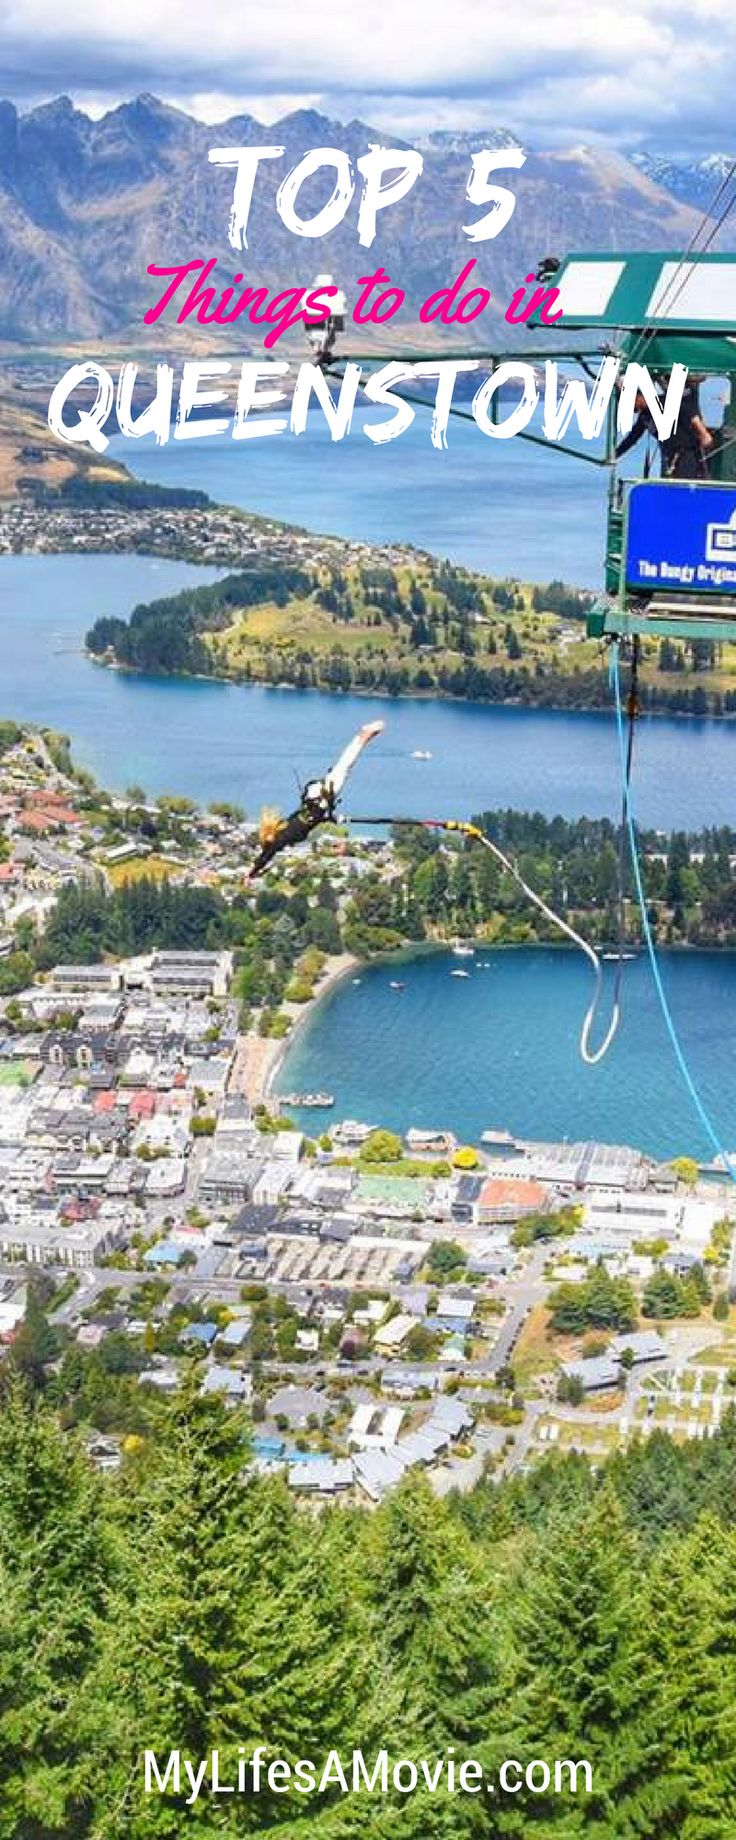 Queenstown is everyone's favorite city in New Zealand, and a must-see if you're visiting! Be sure to check out these 5 best things to do in Queenstown, like bungy jumping, helicopter tours, and even an onsen hot pool!